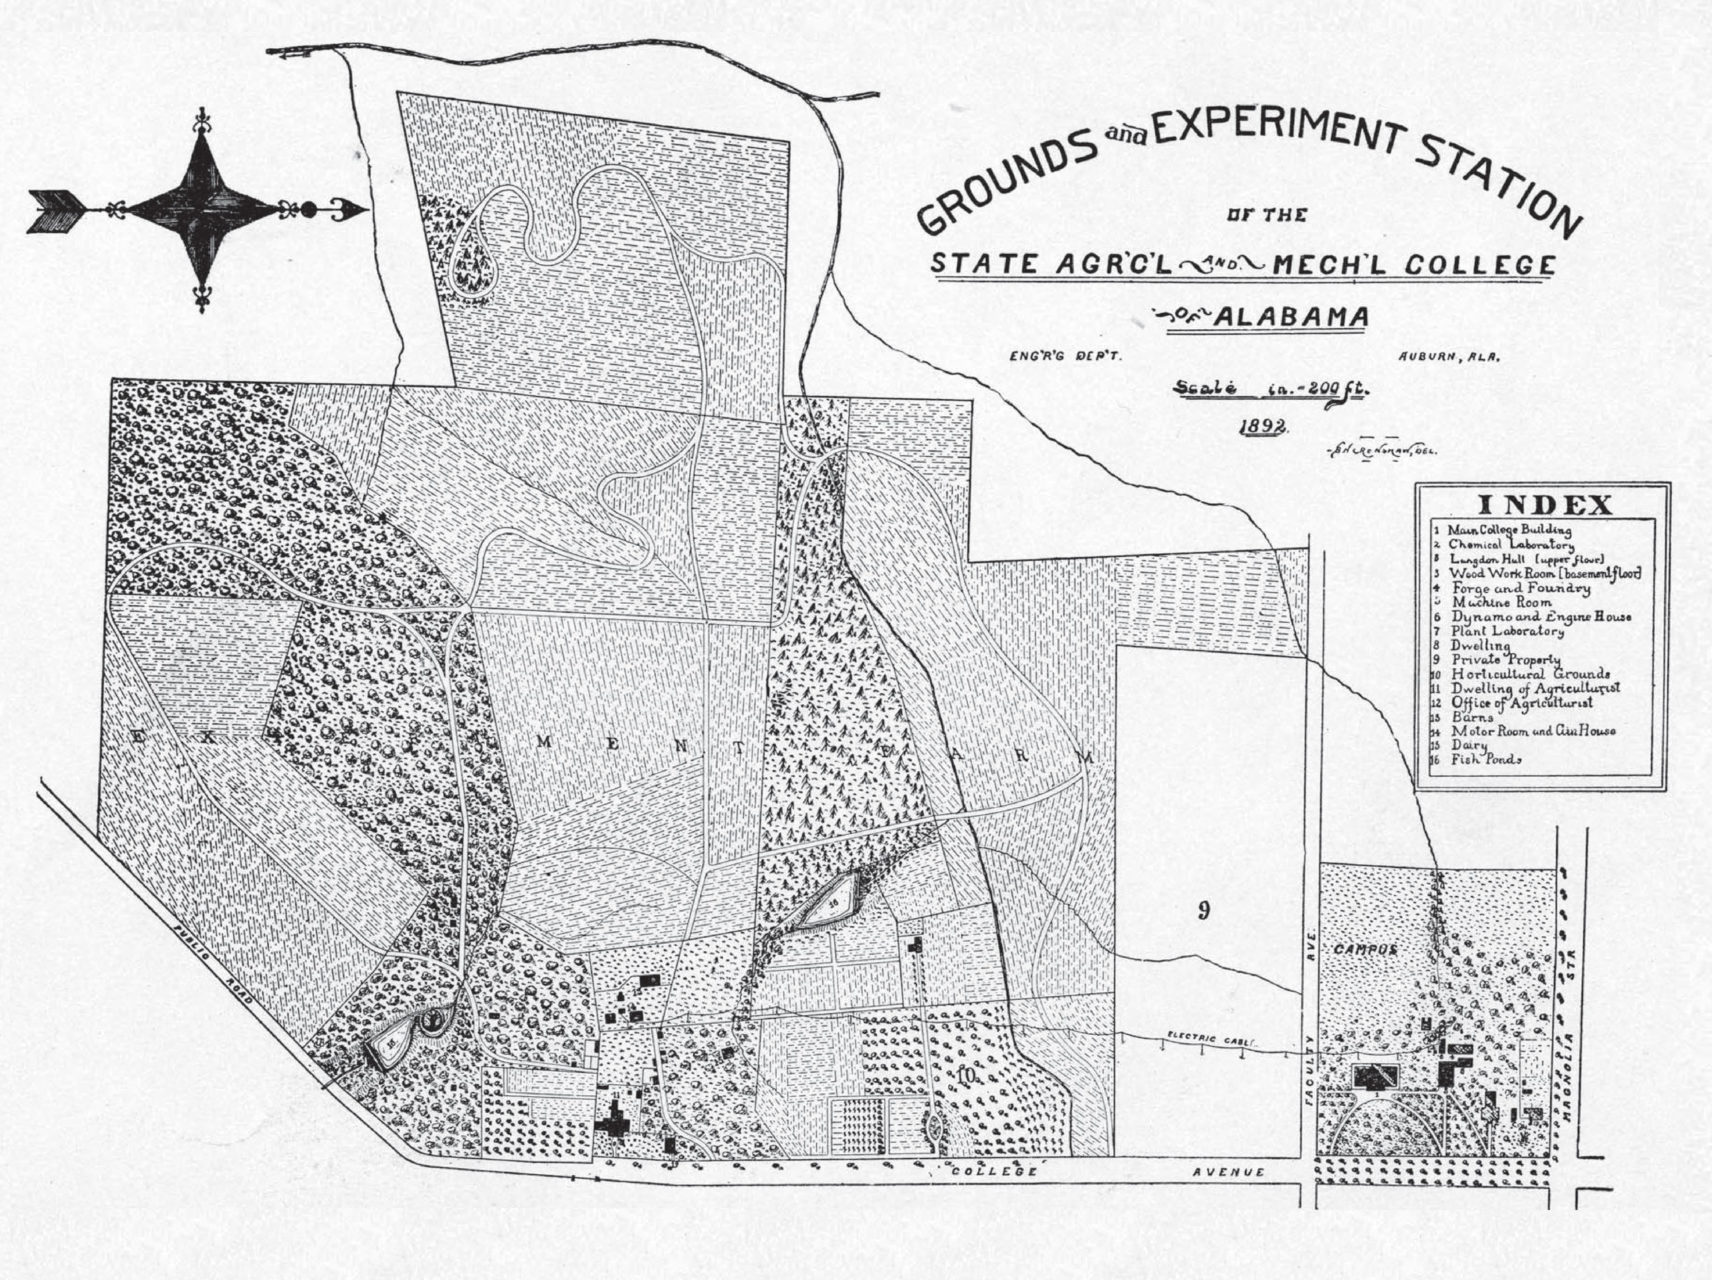 THE FARM EXPERIMENT: As depicted in this historic map, agricultural lands composed the overwhelming majority of campus in 1892.